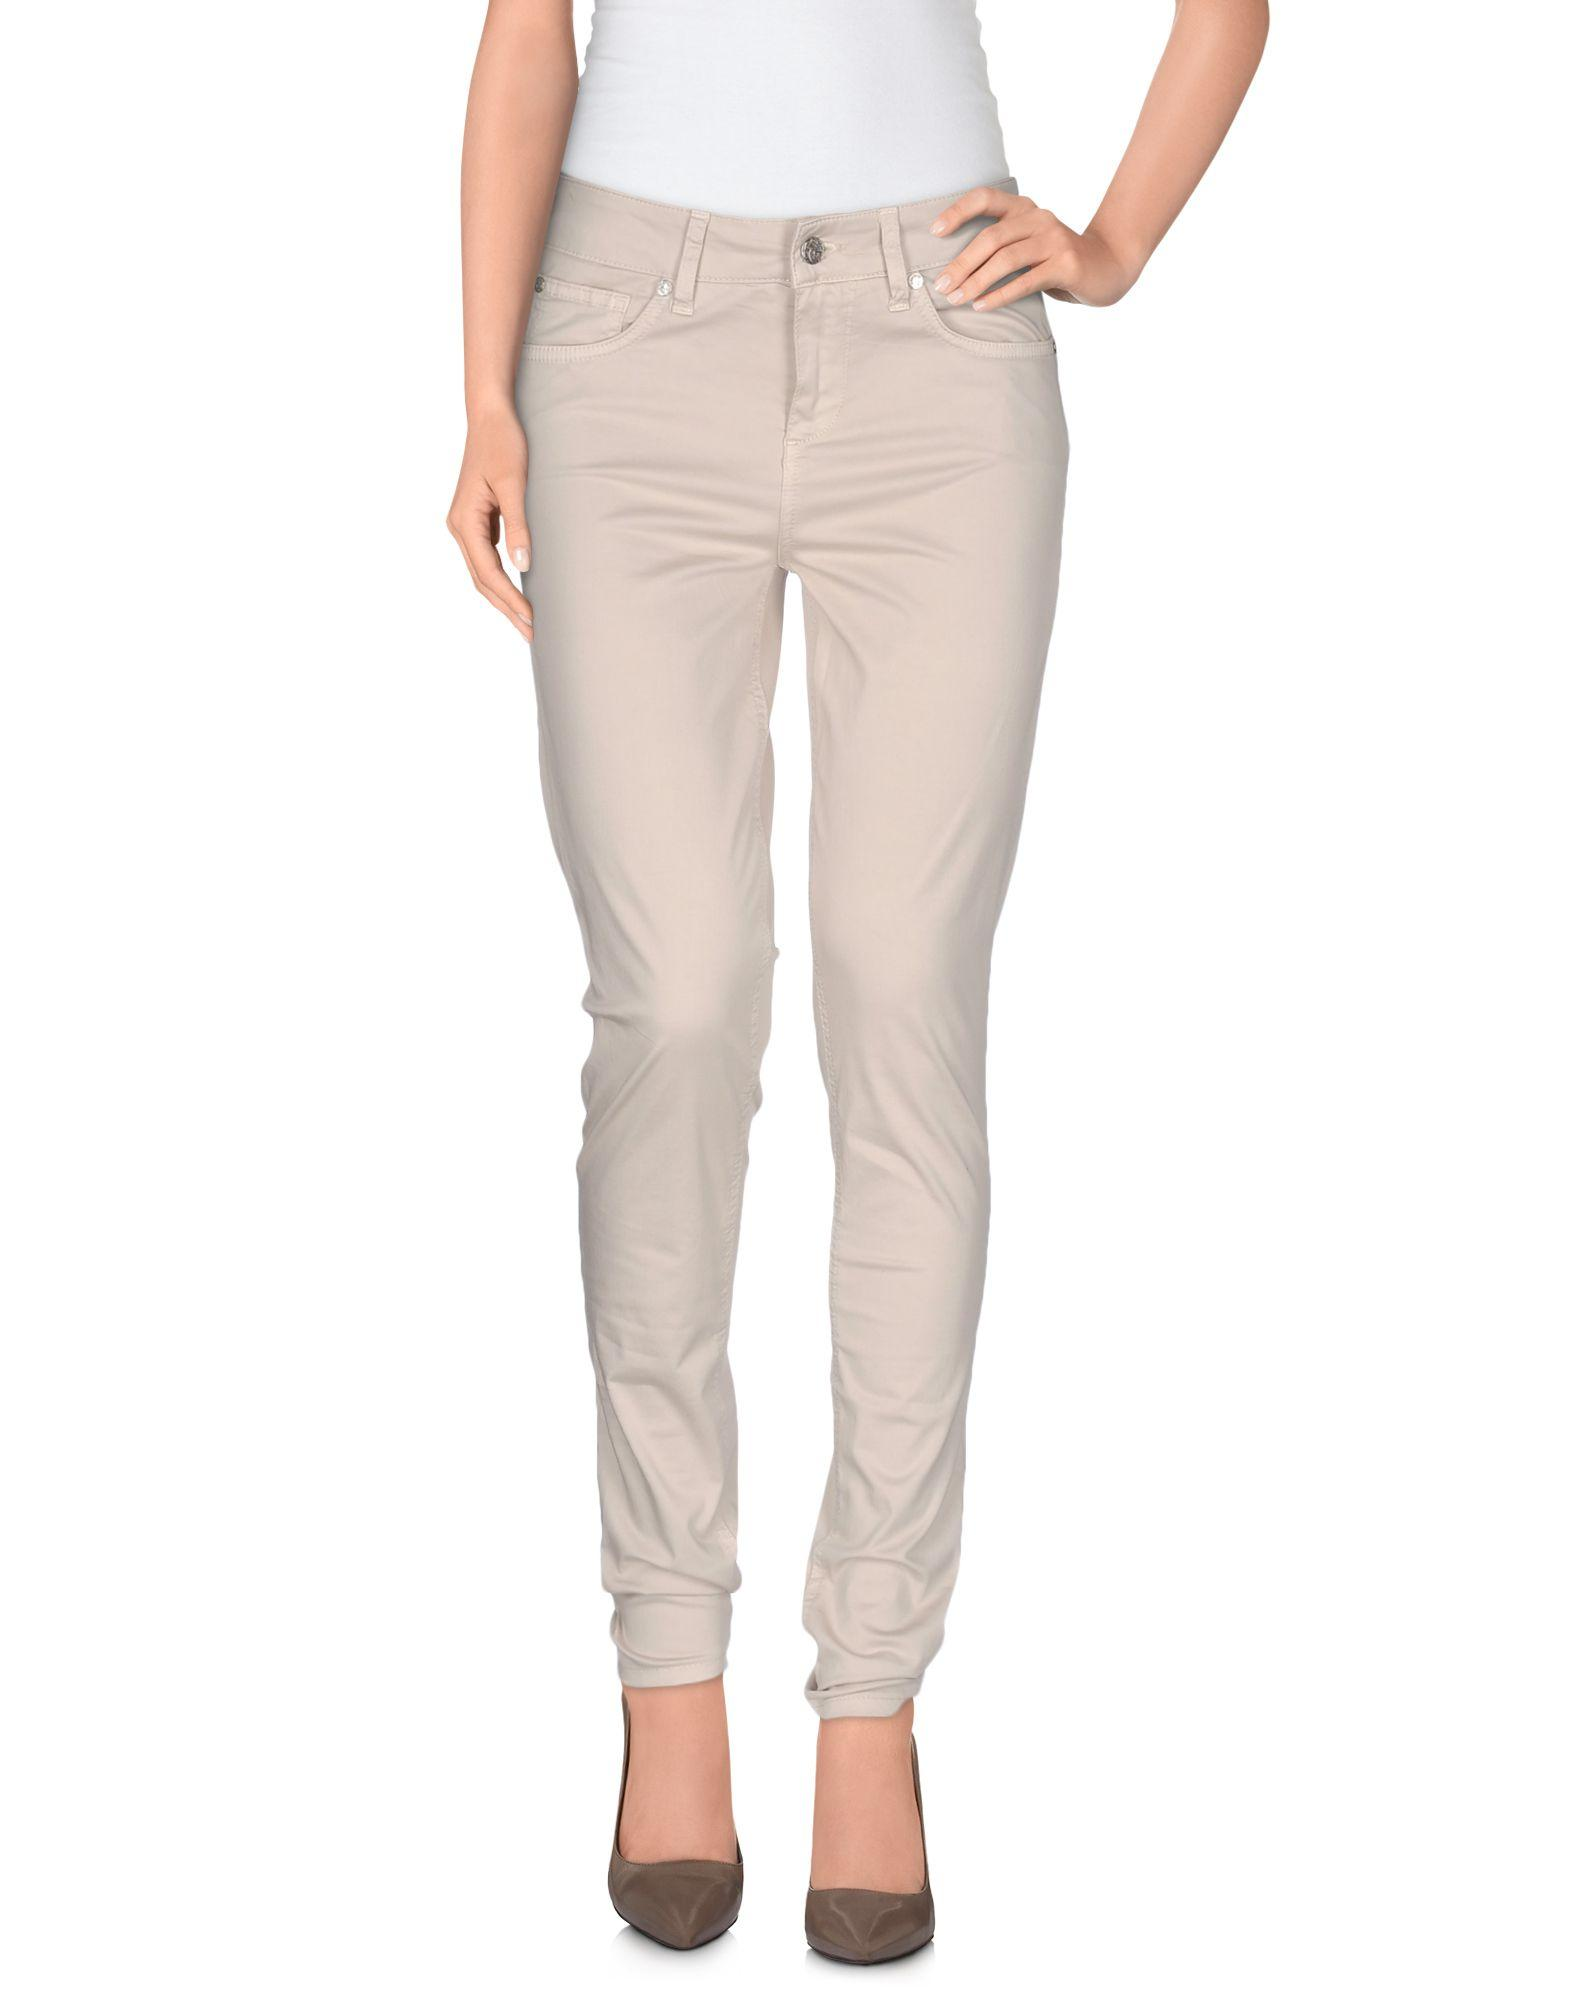 Liu •jo Casual Pants In Beige